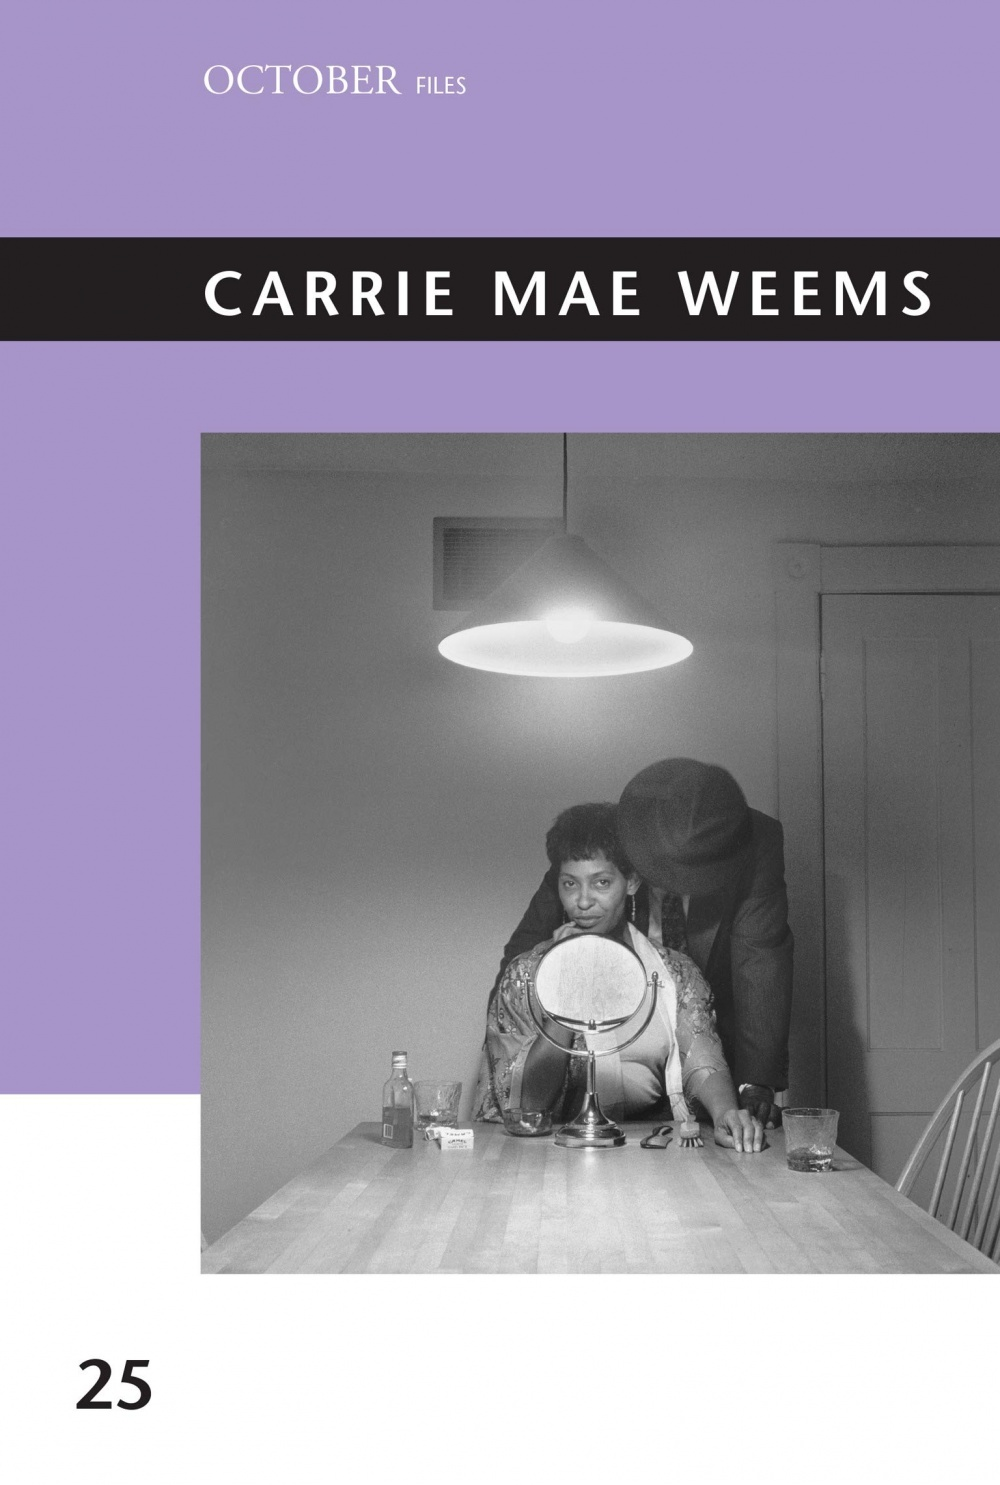 October Files: Carrie Mae Weems